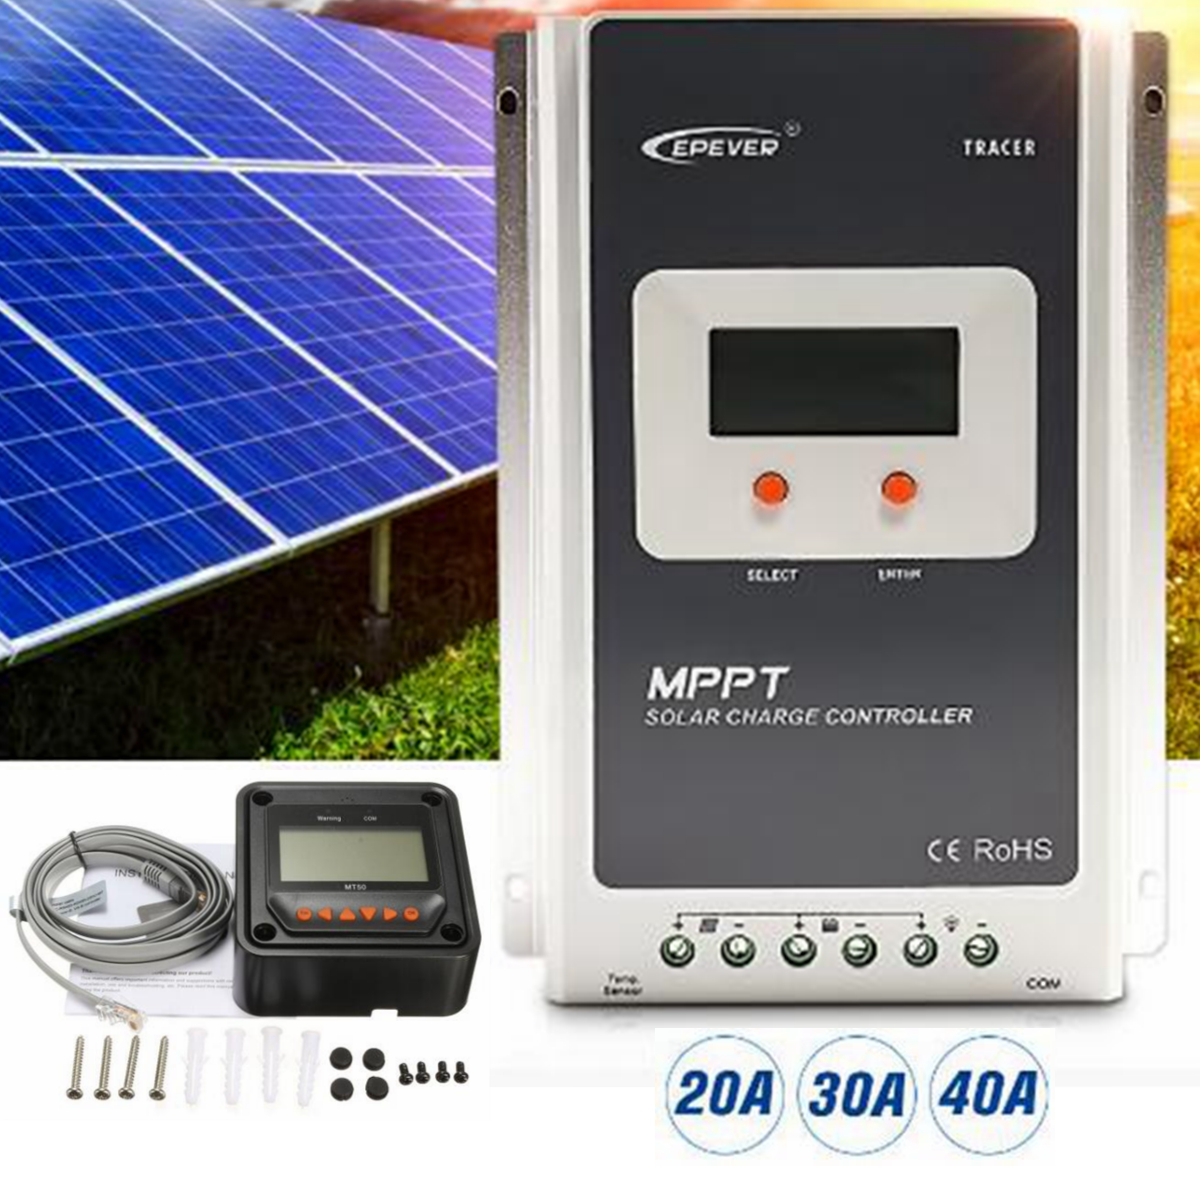 12/24V MPPT Solar Charge Controller RS-485 Regulator 40/30/20A with MT50 Black Remote Meter LCD Panel Display Design Ultra-fast ol 6494 xeфигура сова всегда на связи sealmark